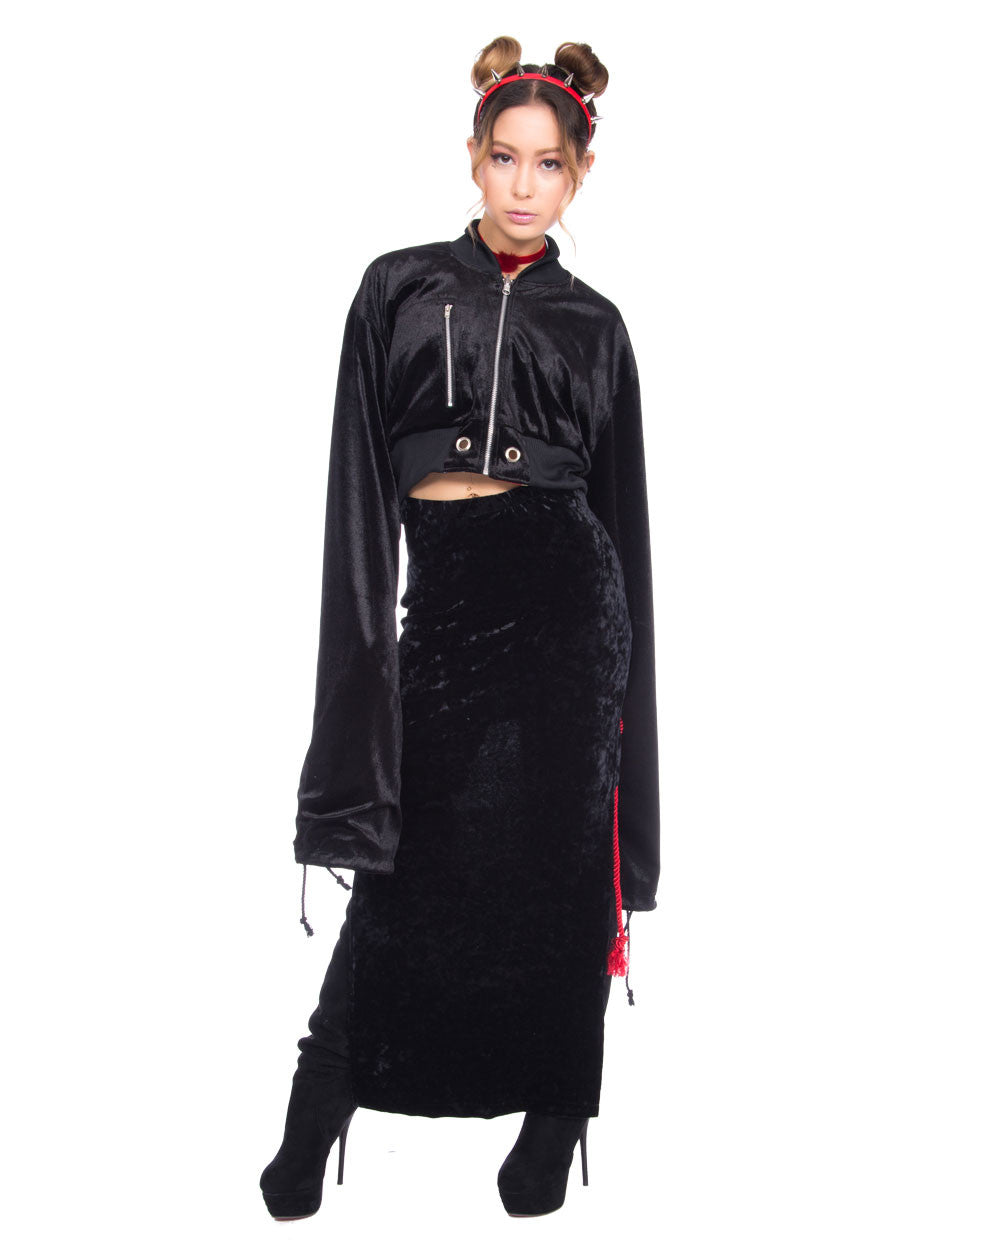 BLACK SHIBARI VELVET 2 WAY SKIRT